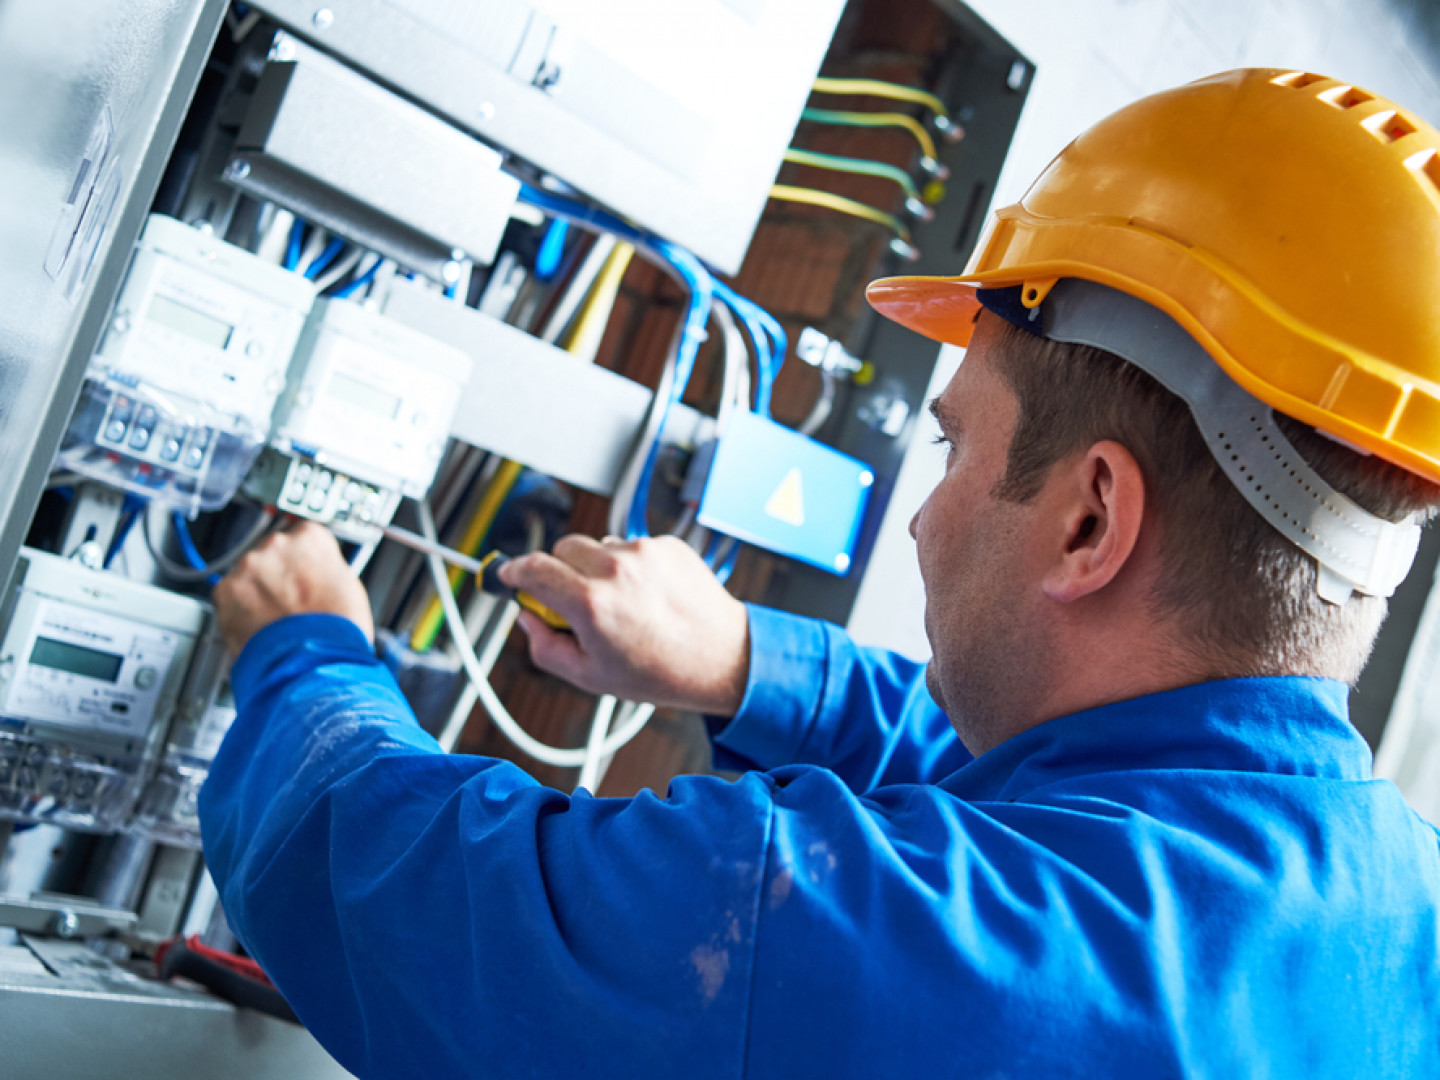 Do you need a professional electrician?